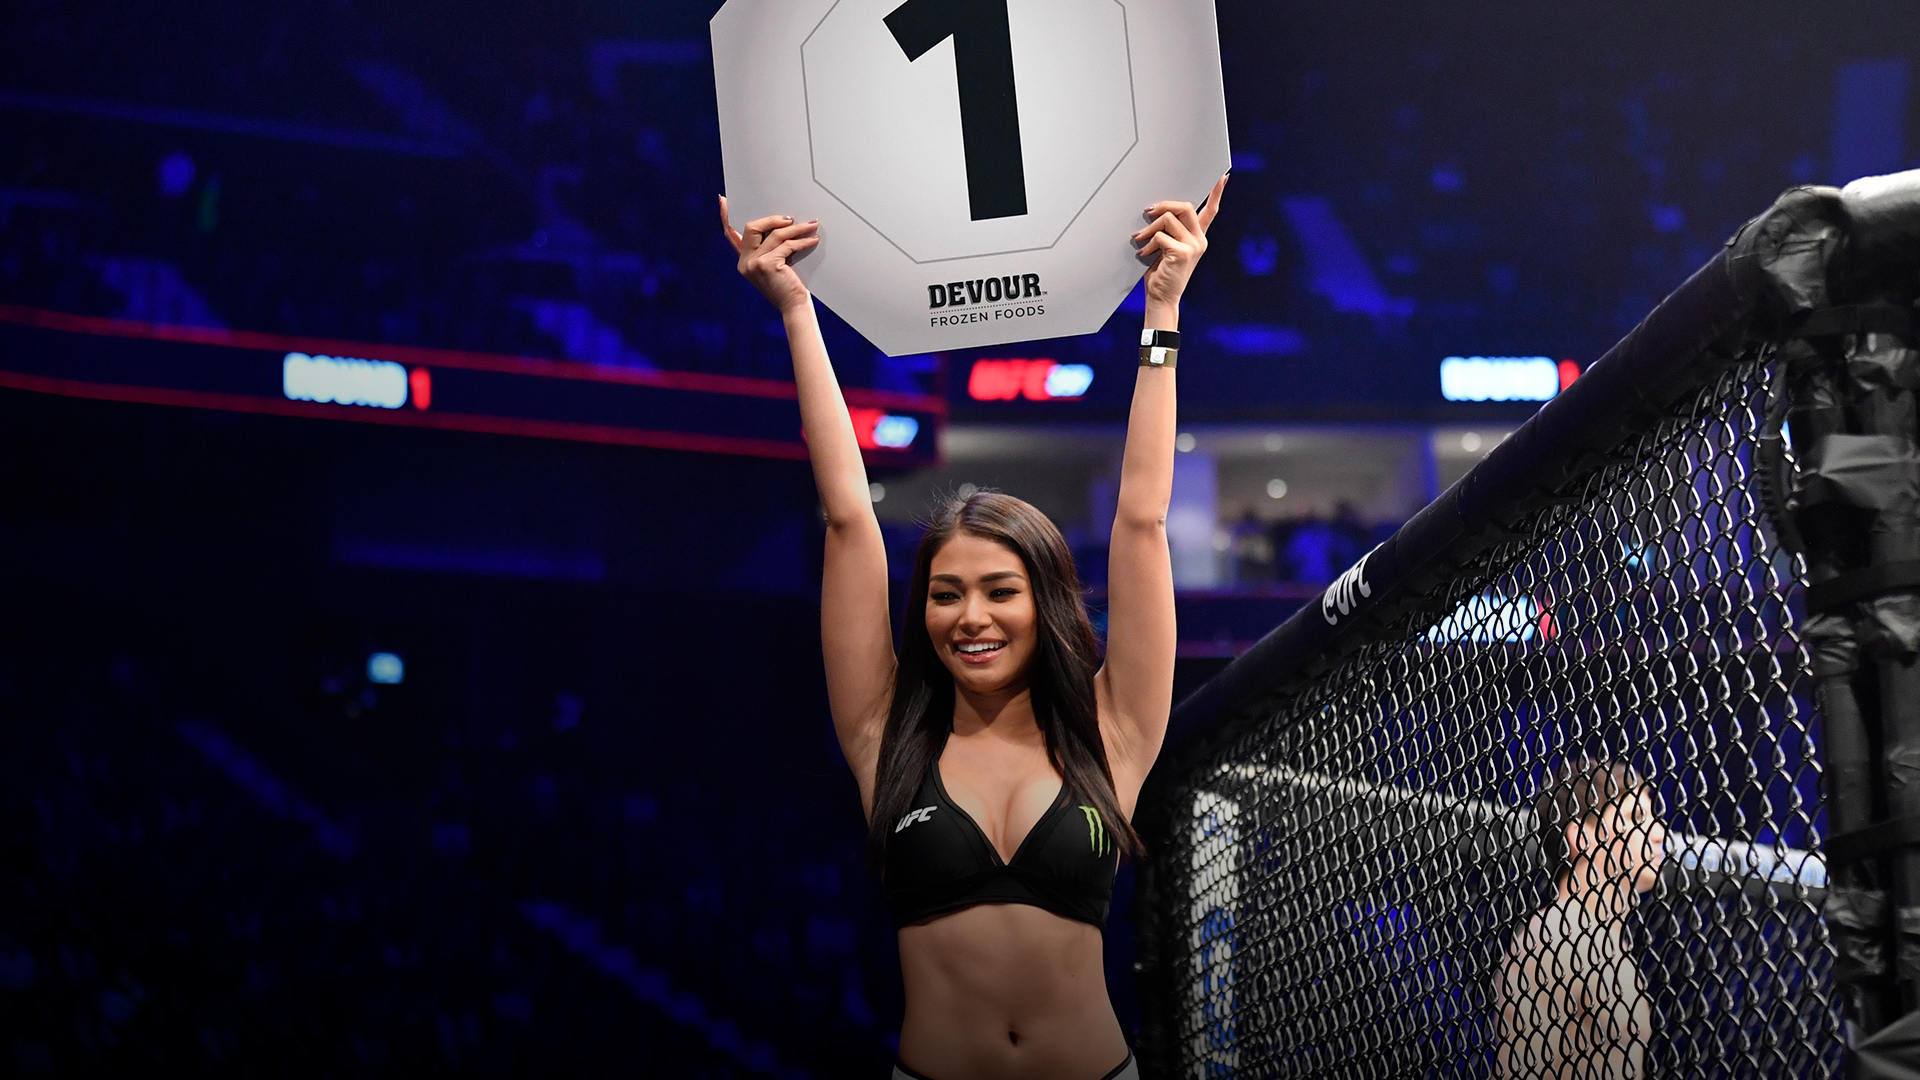 UFC Octagon Girl Red Dela Cruz introduces a round during the UFC 257 event inside Etihad Arena on UFC Fight Island on January 23, 2021 in Abu Dhabi, United Arab Emirates. (Photo by Jeff Bottari/Zuffa LLC)